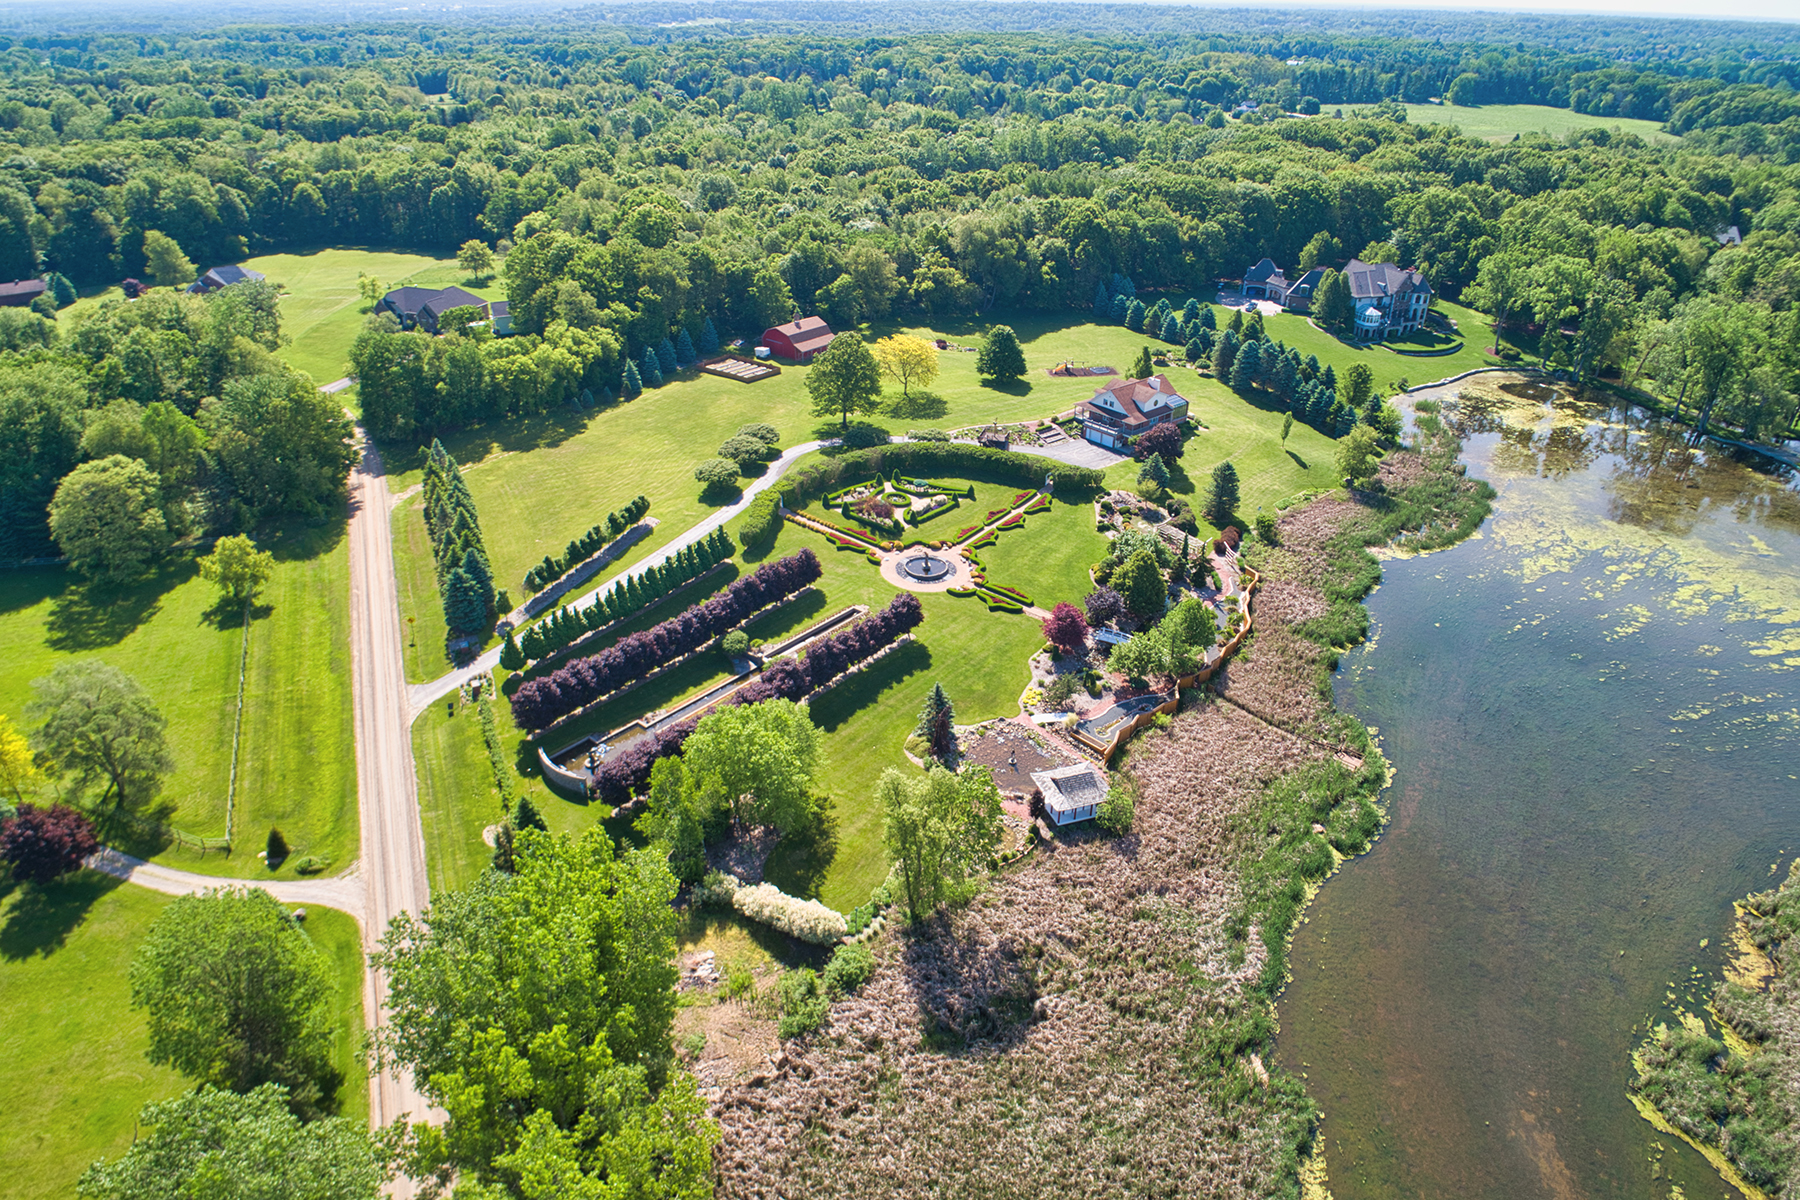 Single Family Homes for Sale at Bruce Township 4700 Raap Road Bruce Township, Michigan 48065 United States